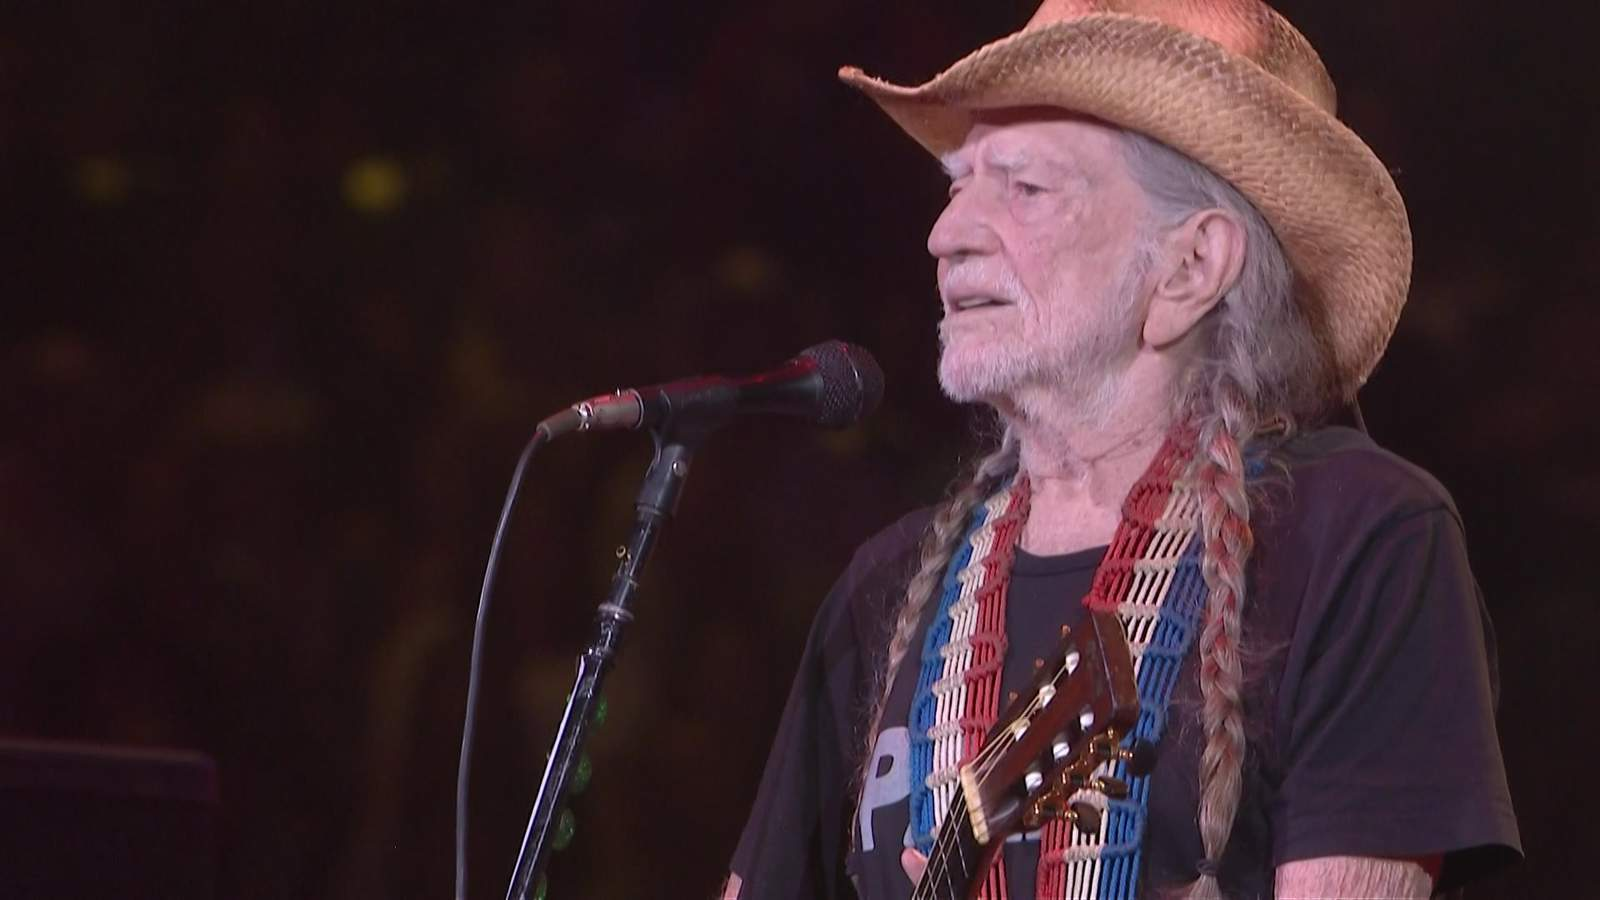 willie nelson cries during performance